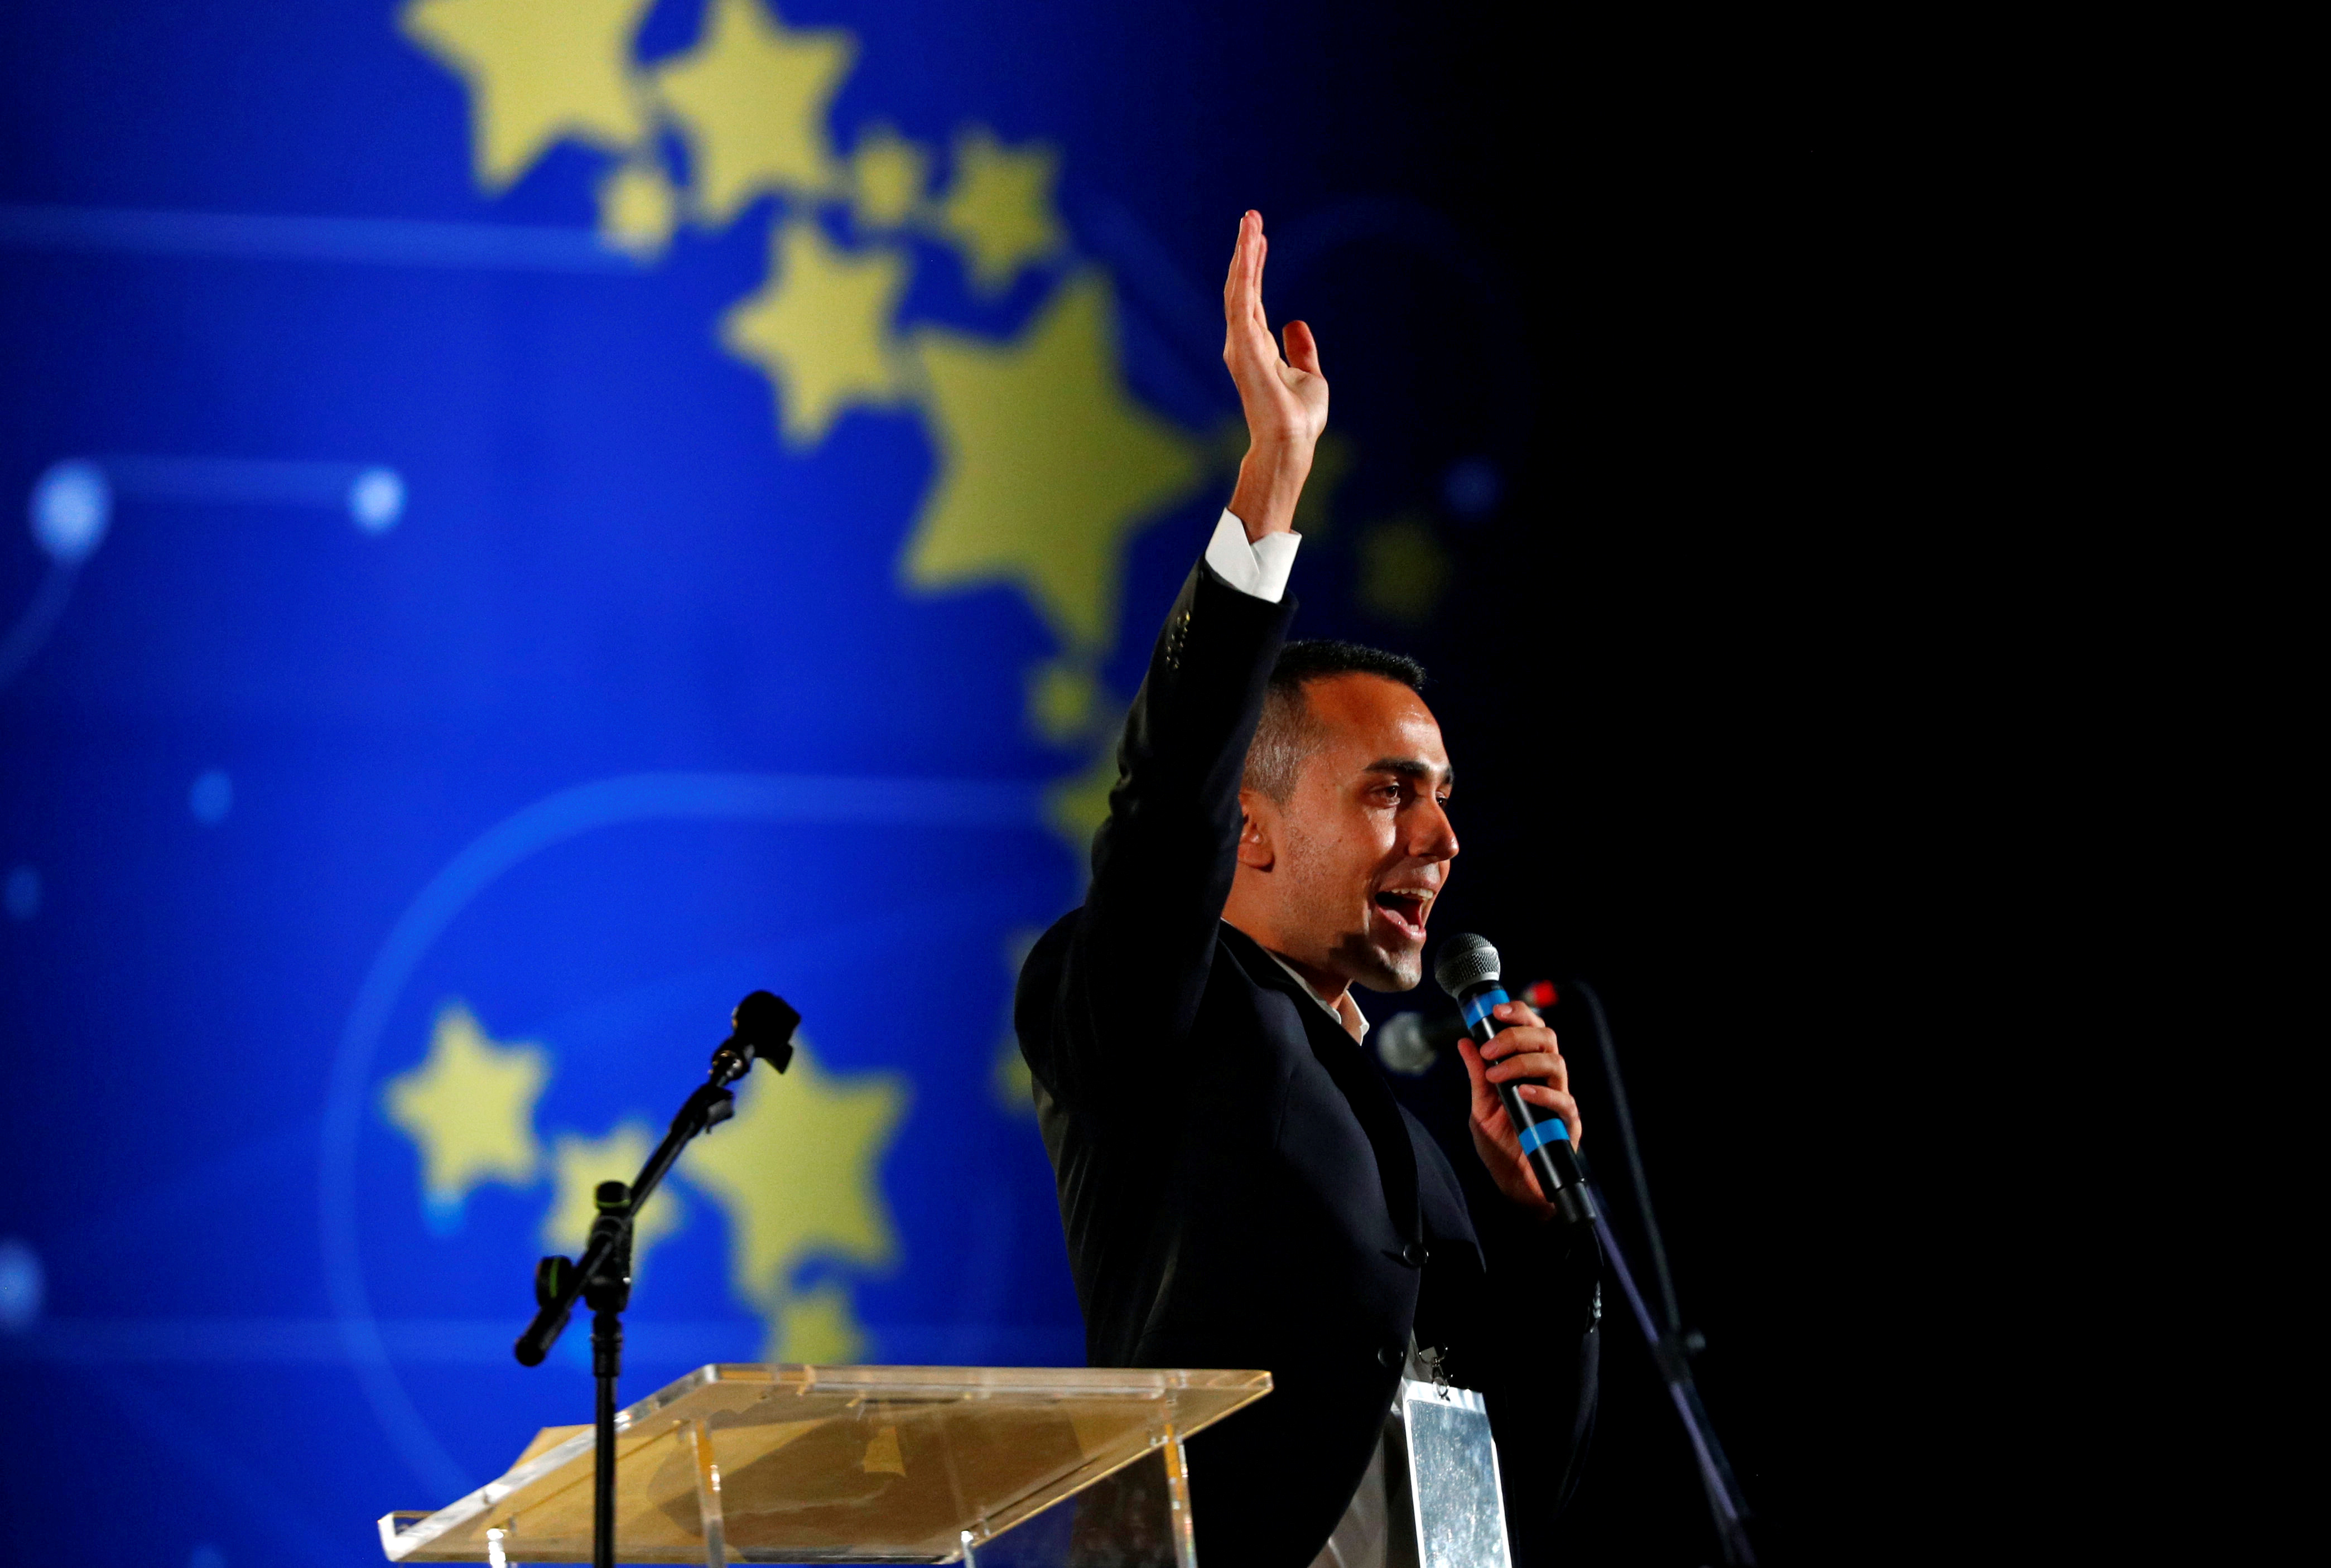 Italy's 5-Star Movement rally in Rome